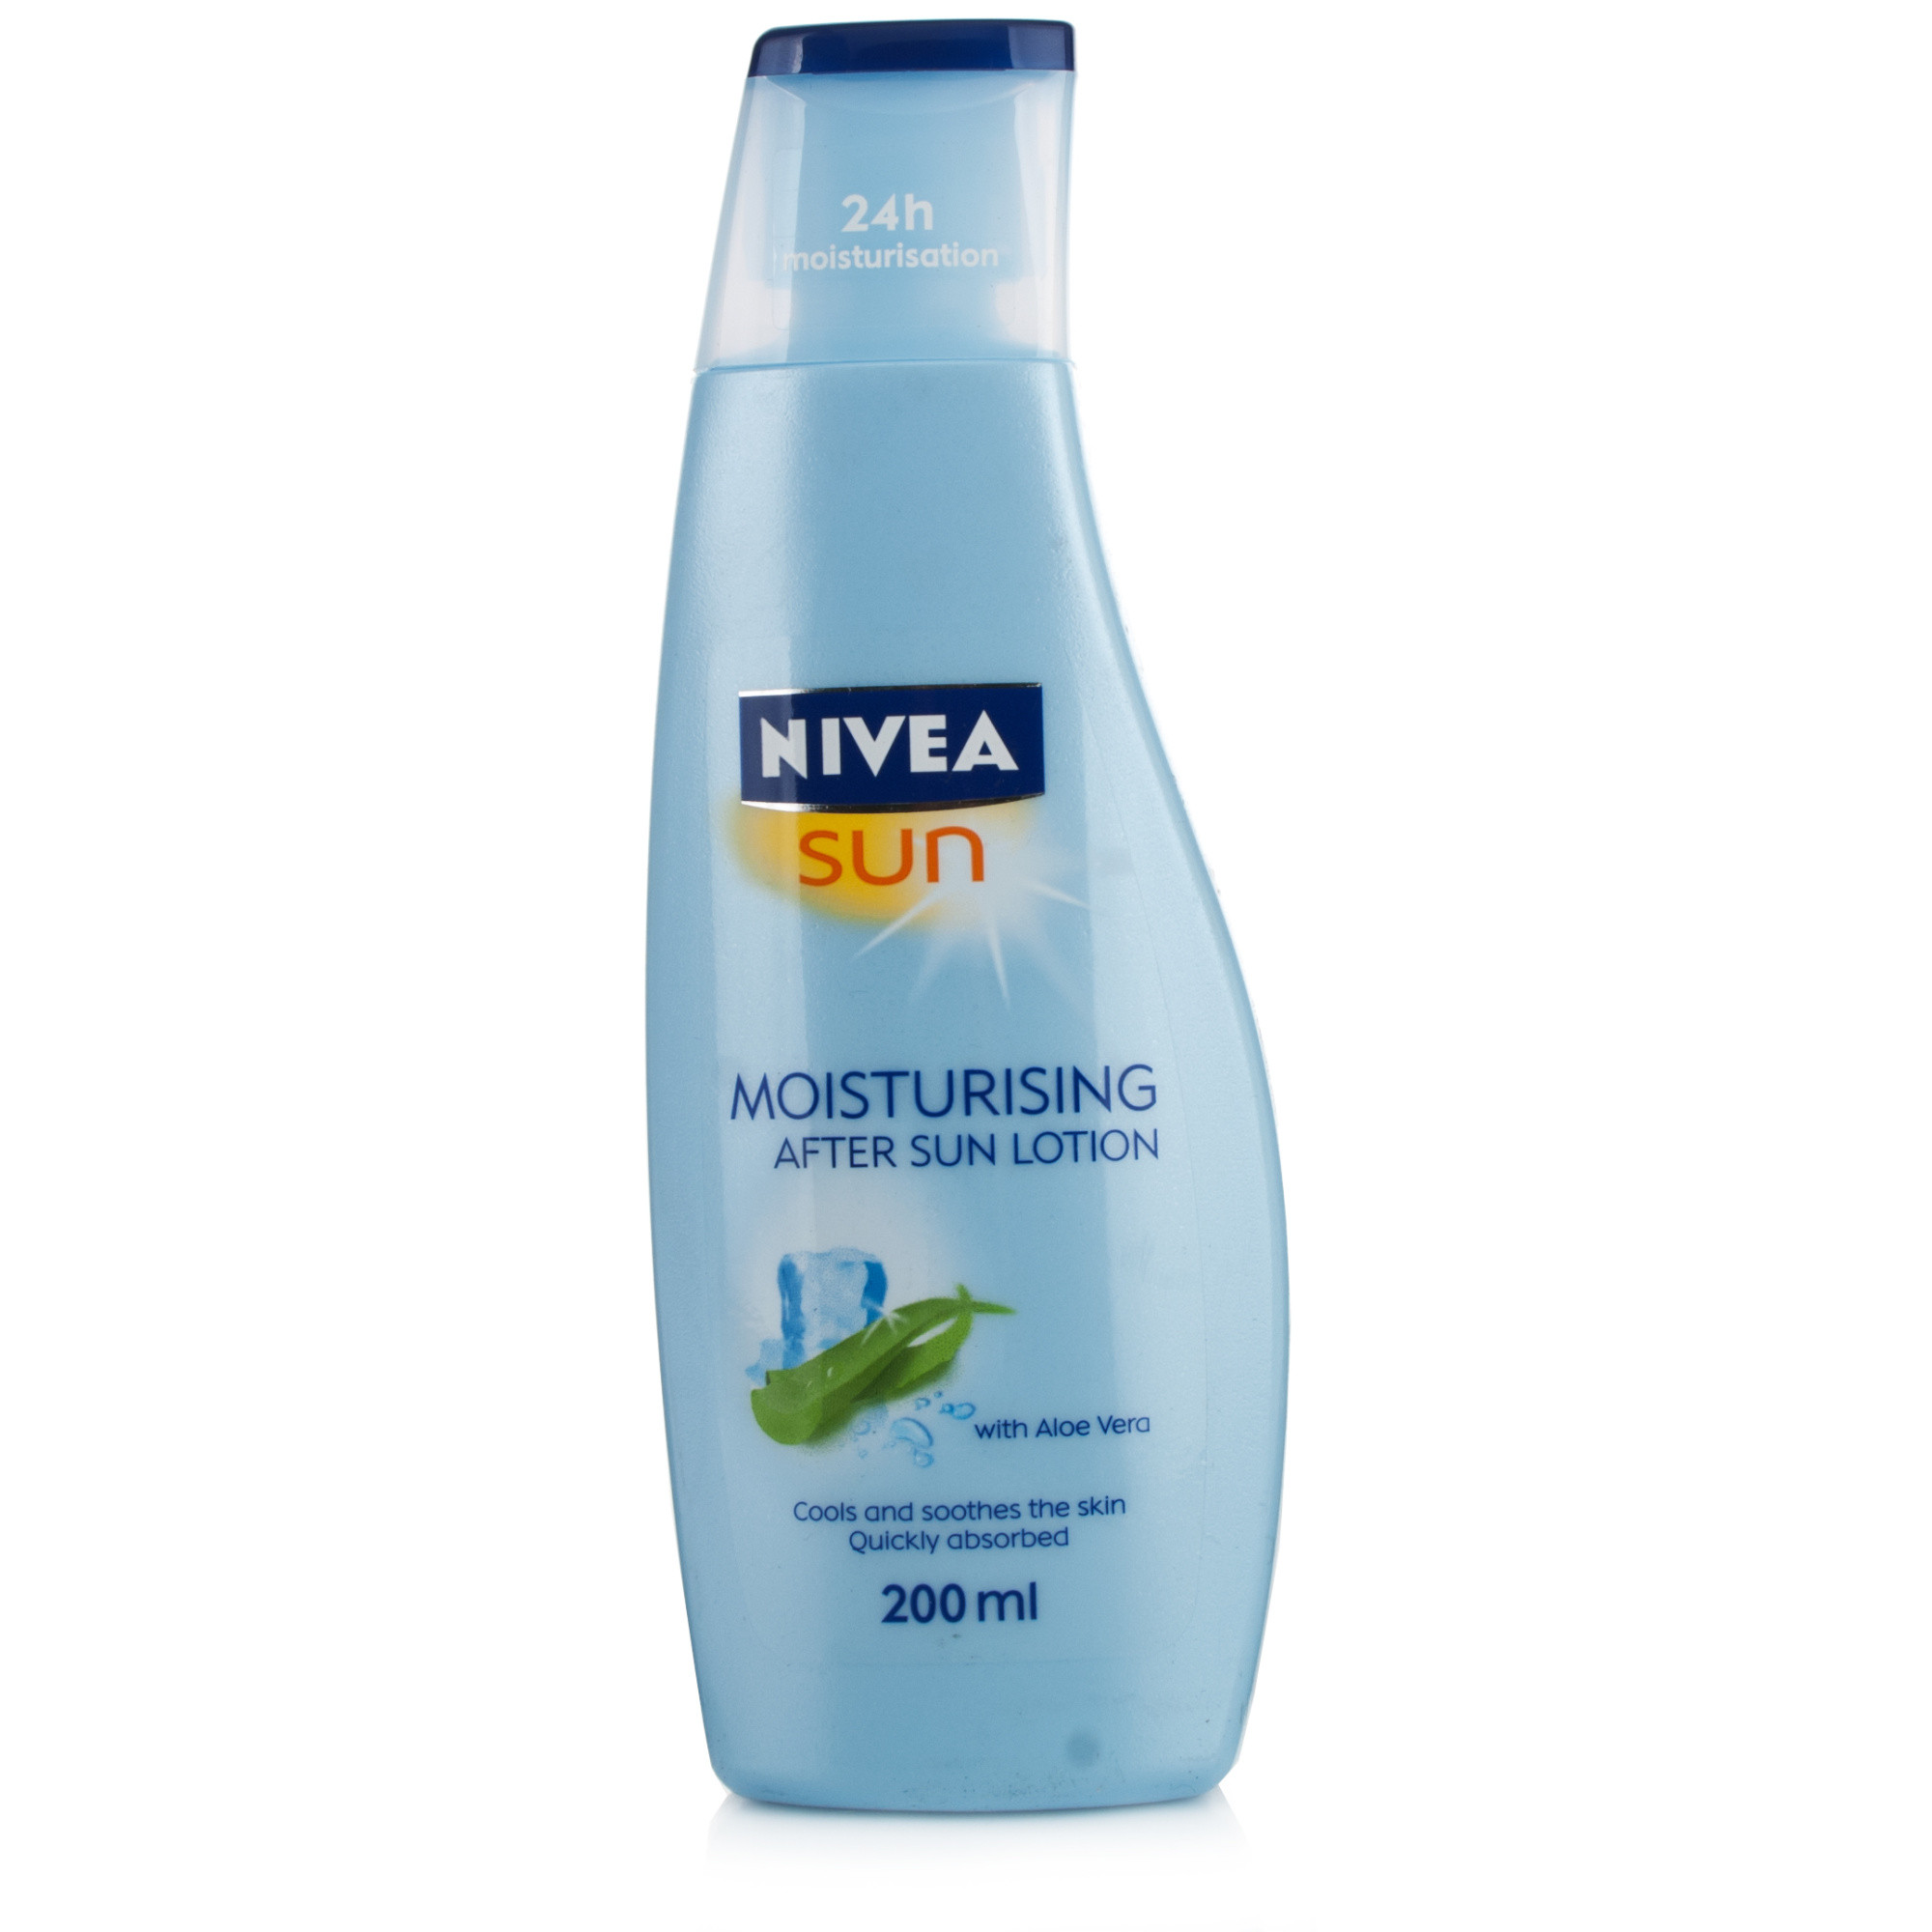 Nivea Moisturising After Sun Lotion